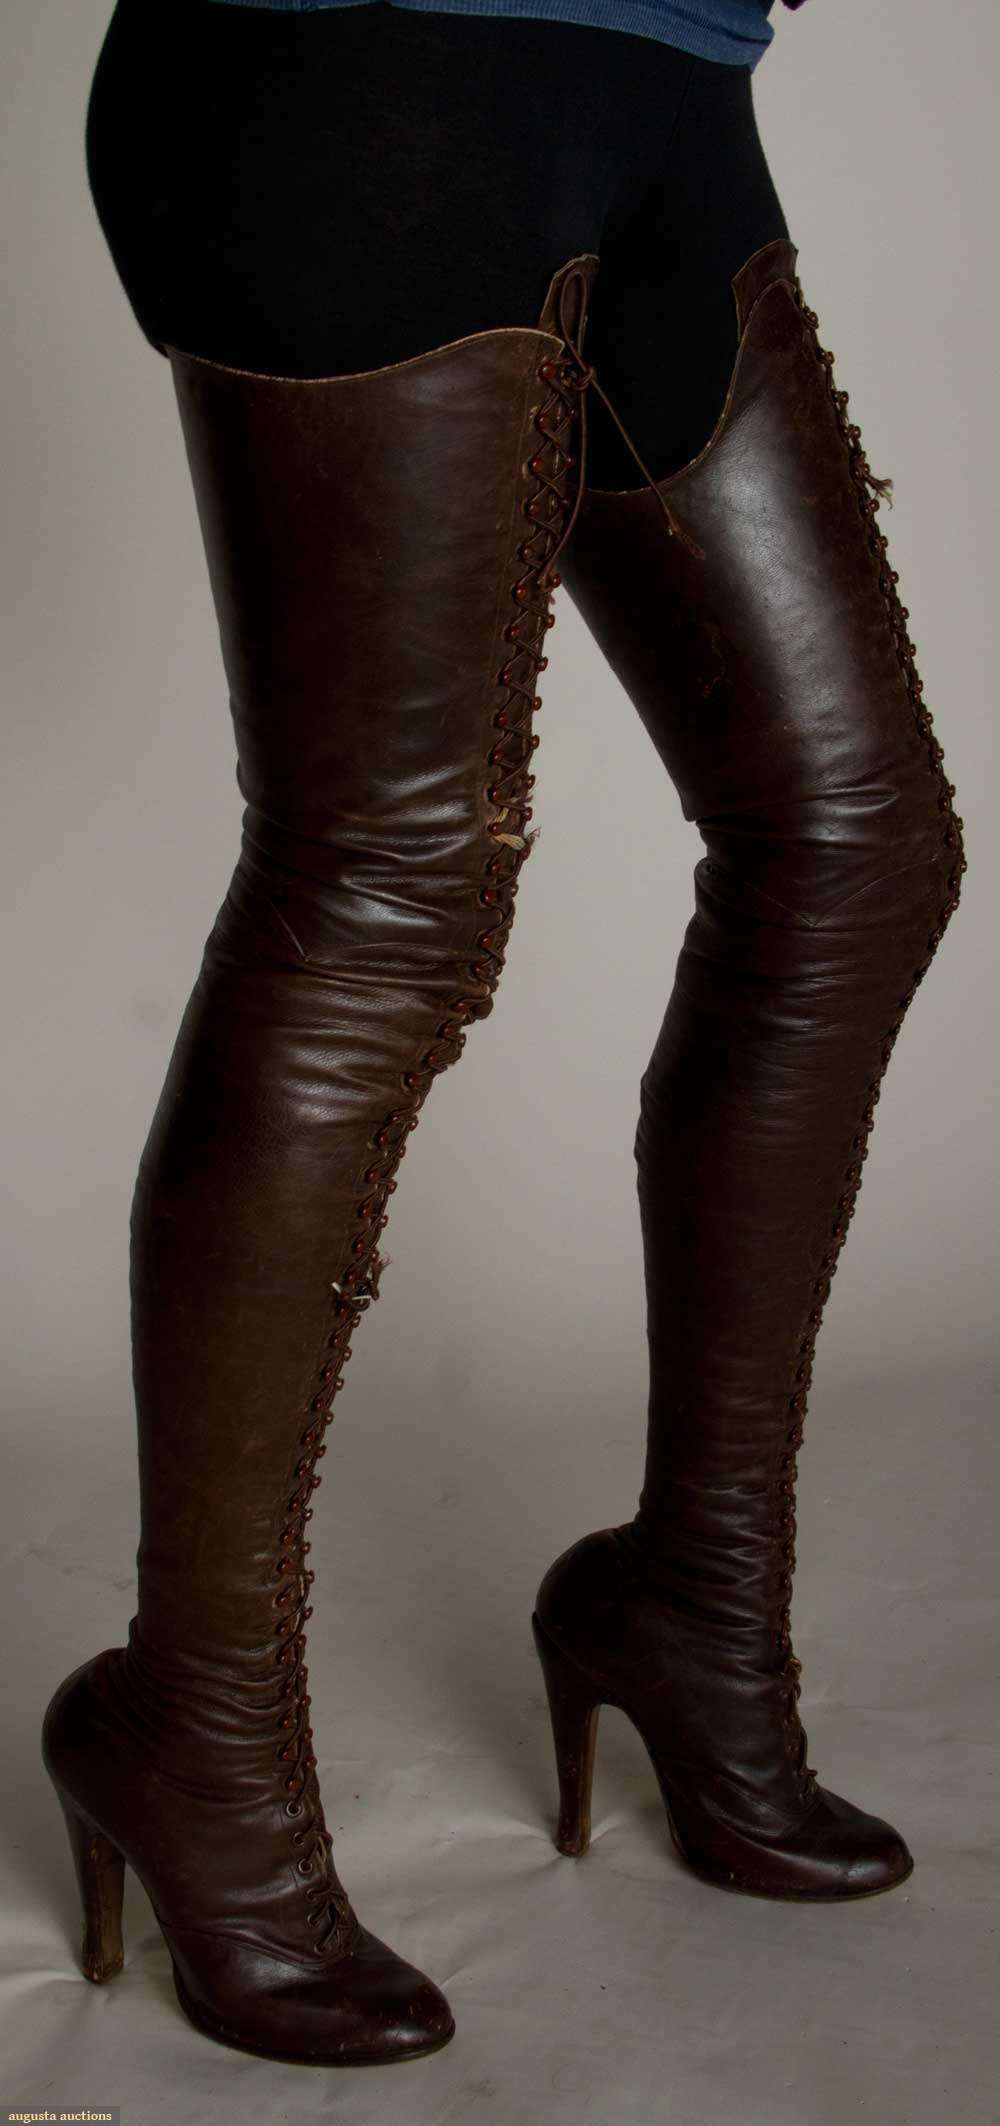 c1890 ladies leather fetish thigh high lace up boots with